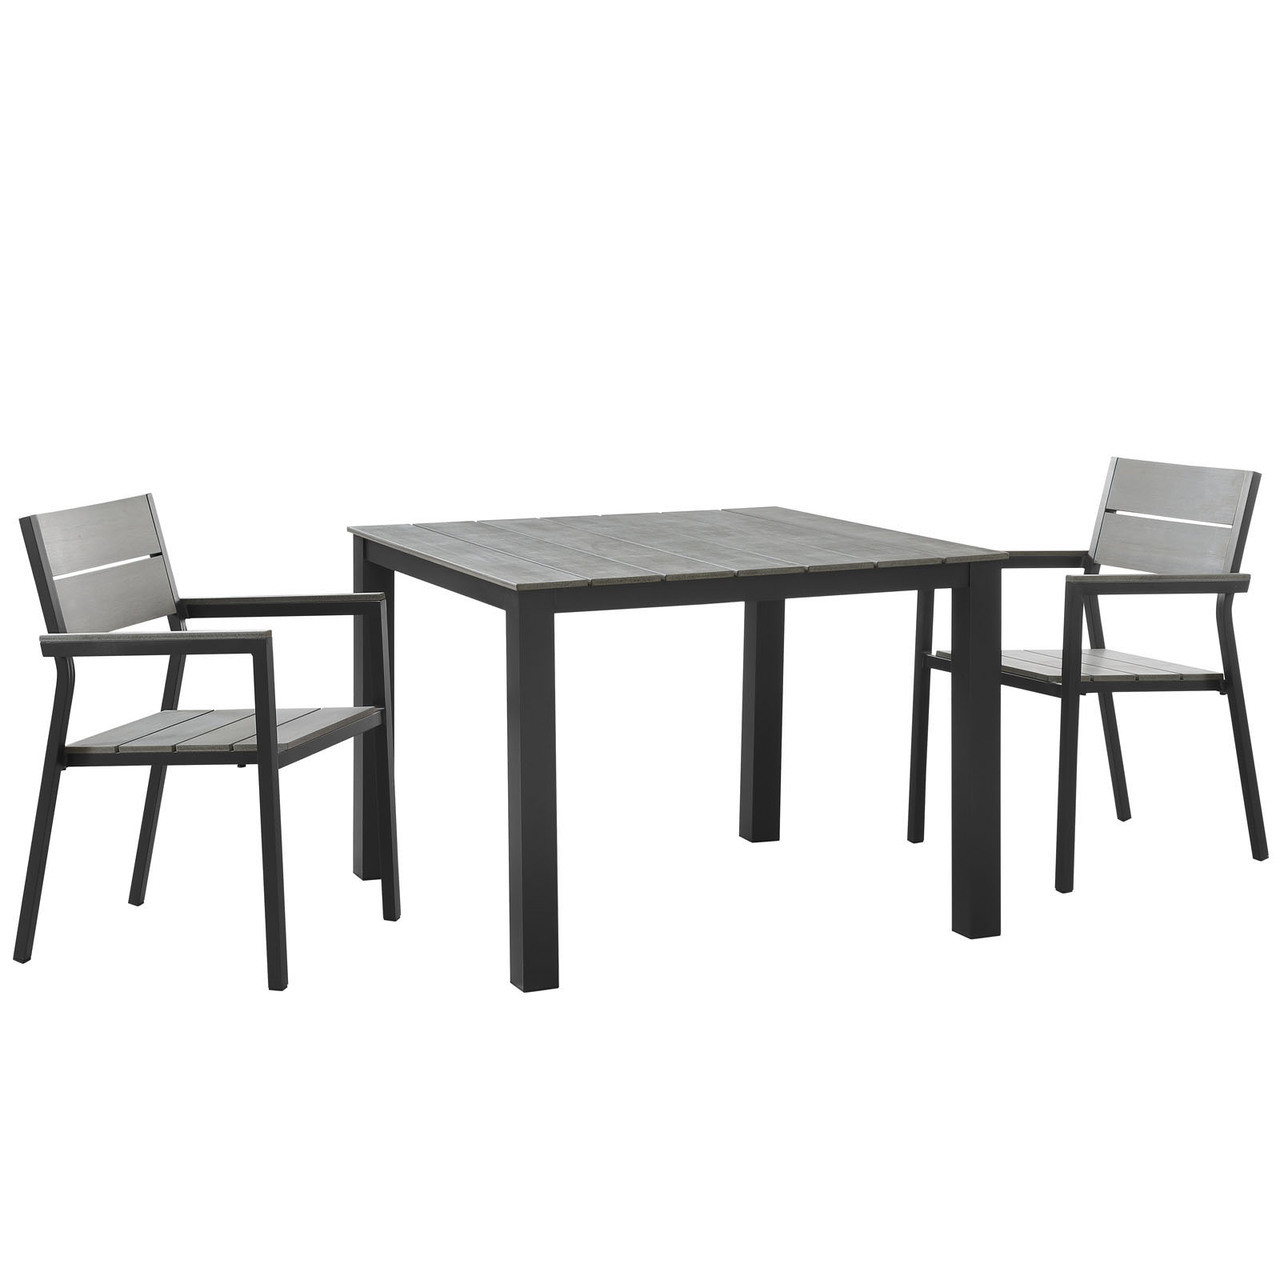 Admirable Maine 3 Piece Outdoor Patio Dining Set Brown Grey Steel Beutiful Home Inspiration Ommitmahrainfo